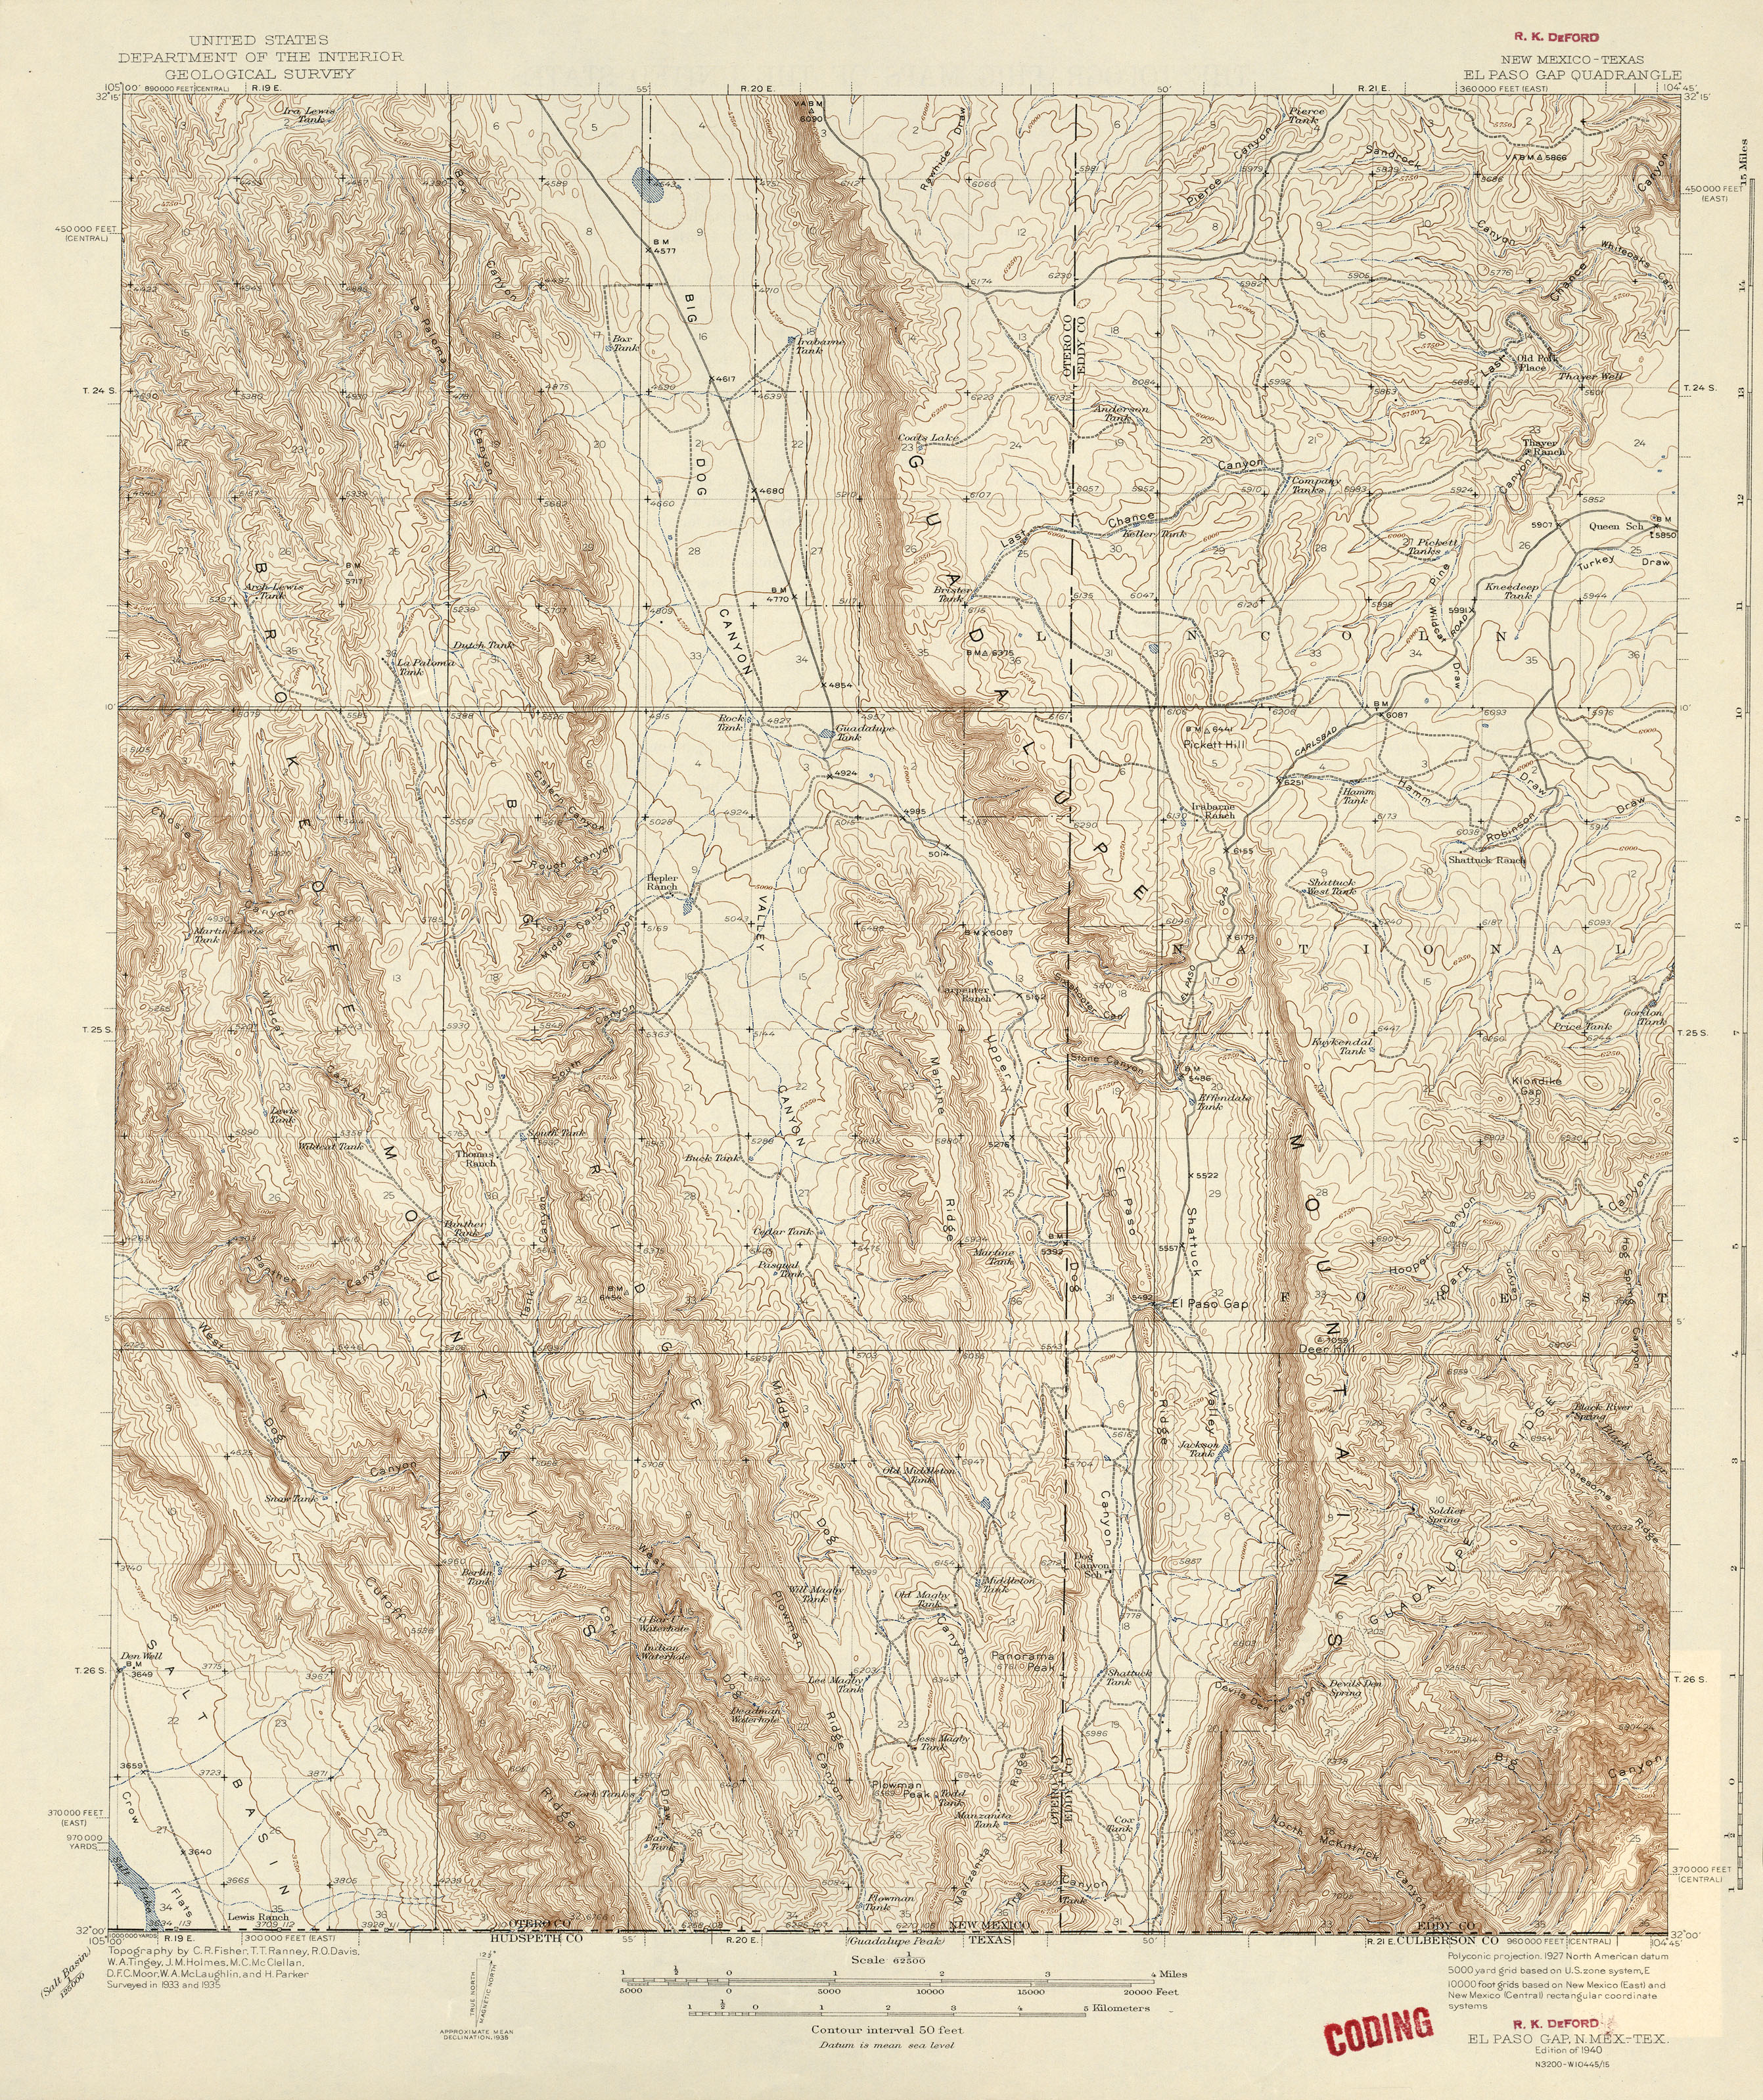 New Mexico Historical Topographic Maps PerryCastañeda Map - New mexico on us map